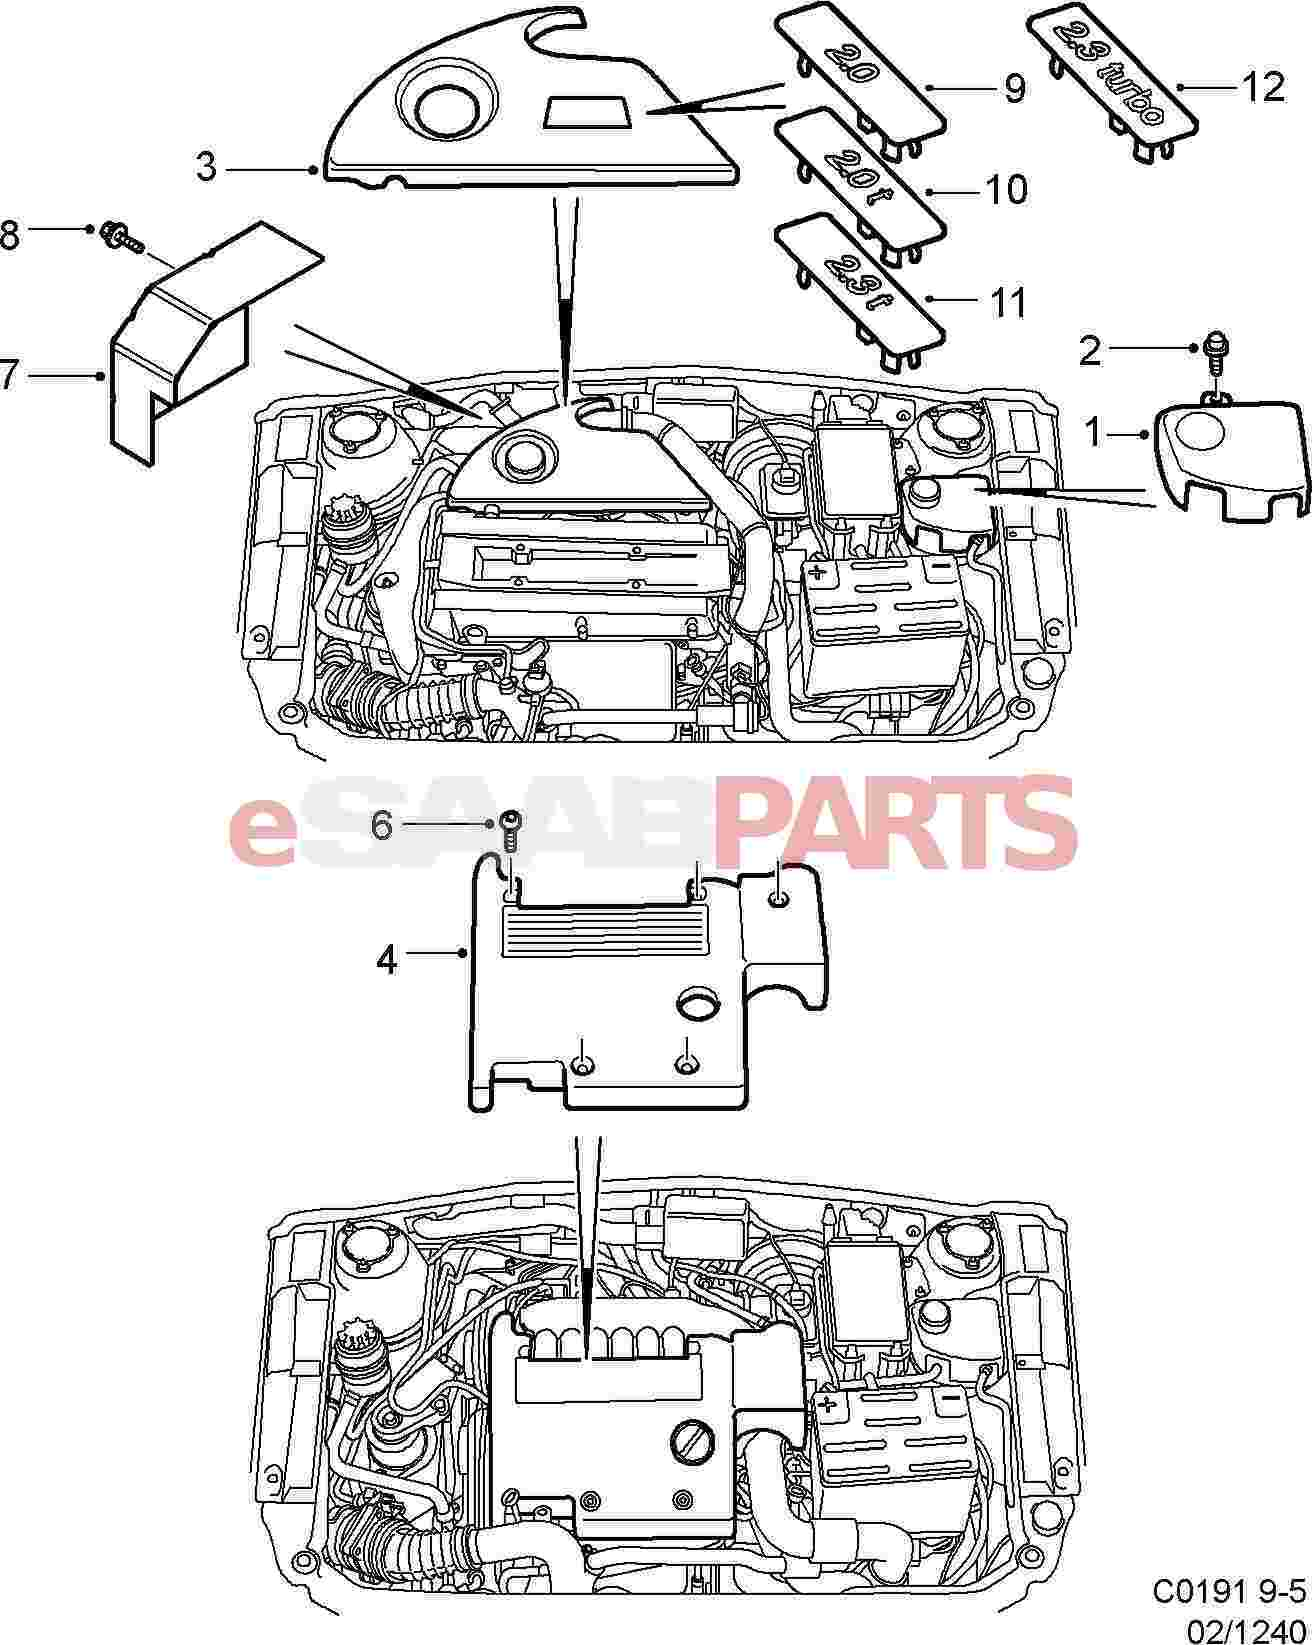 Saab Engine Mounts Diagram 96 Honda Accord Wiring Diagram